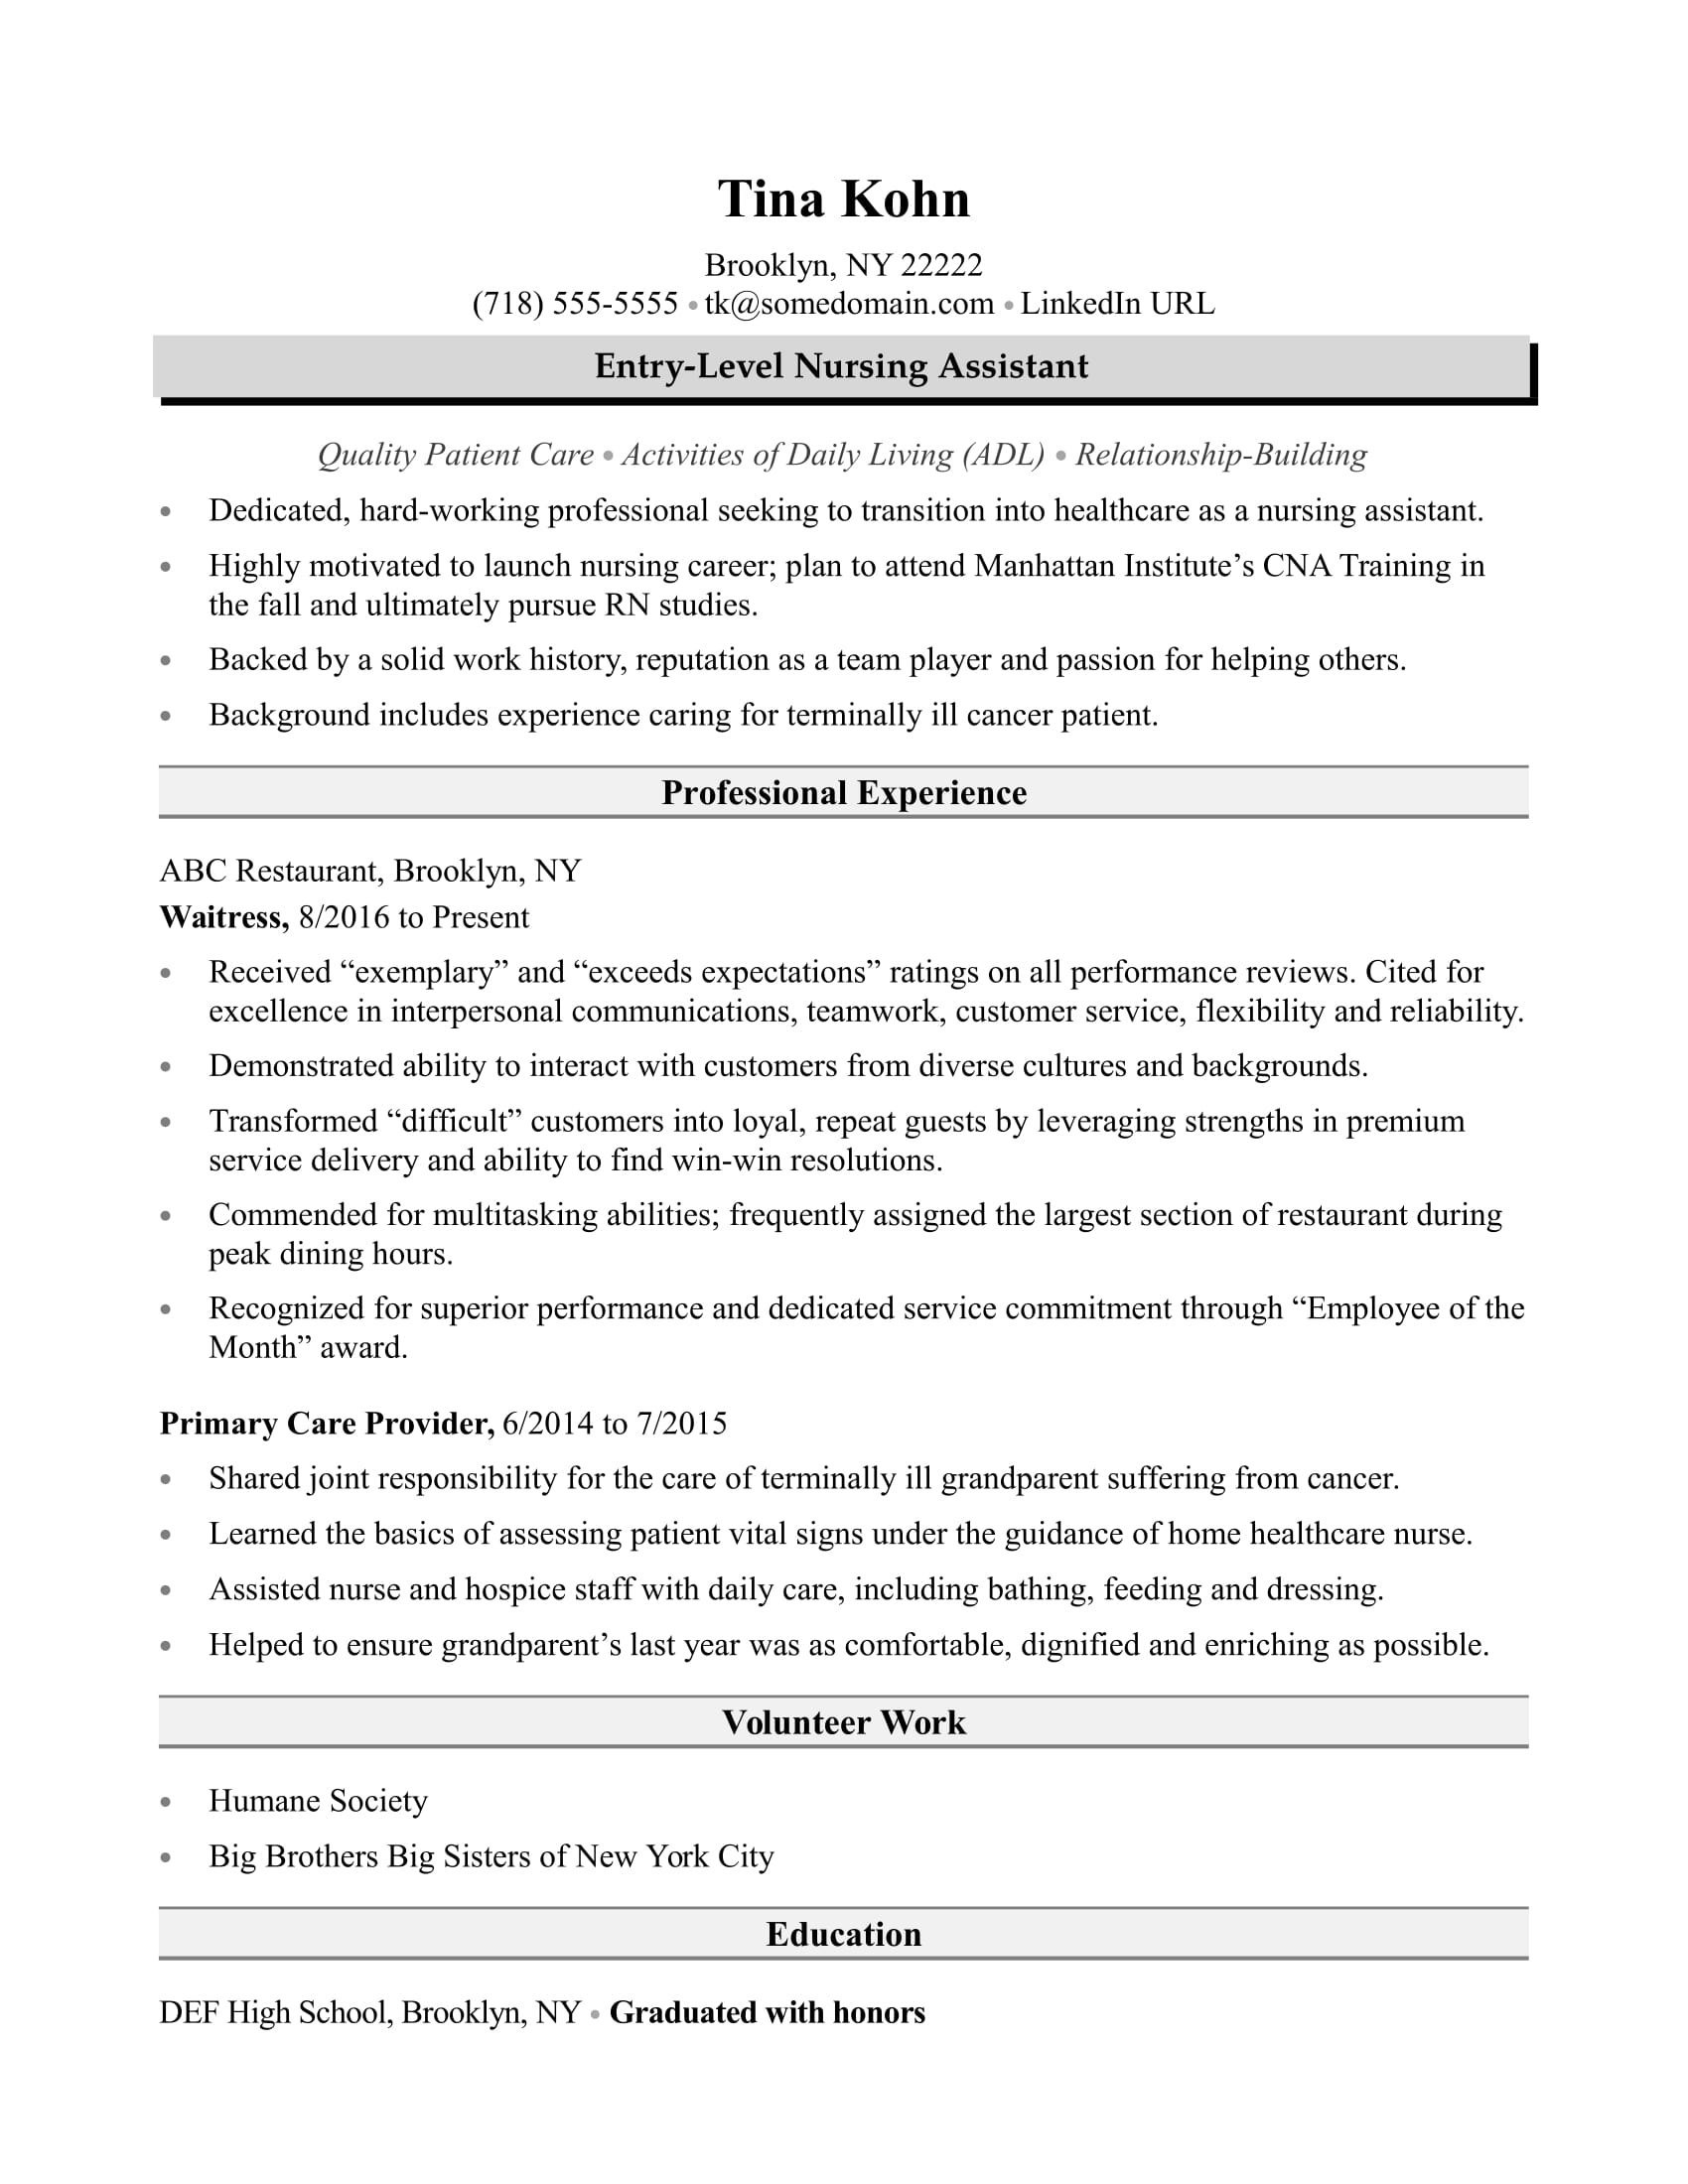 nursing assistant resume sample monster cna for hospital skills adjectives best Resume Cna Resume For Hospital